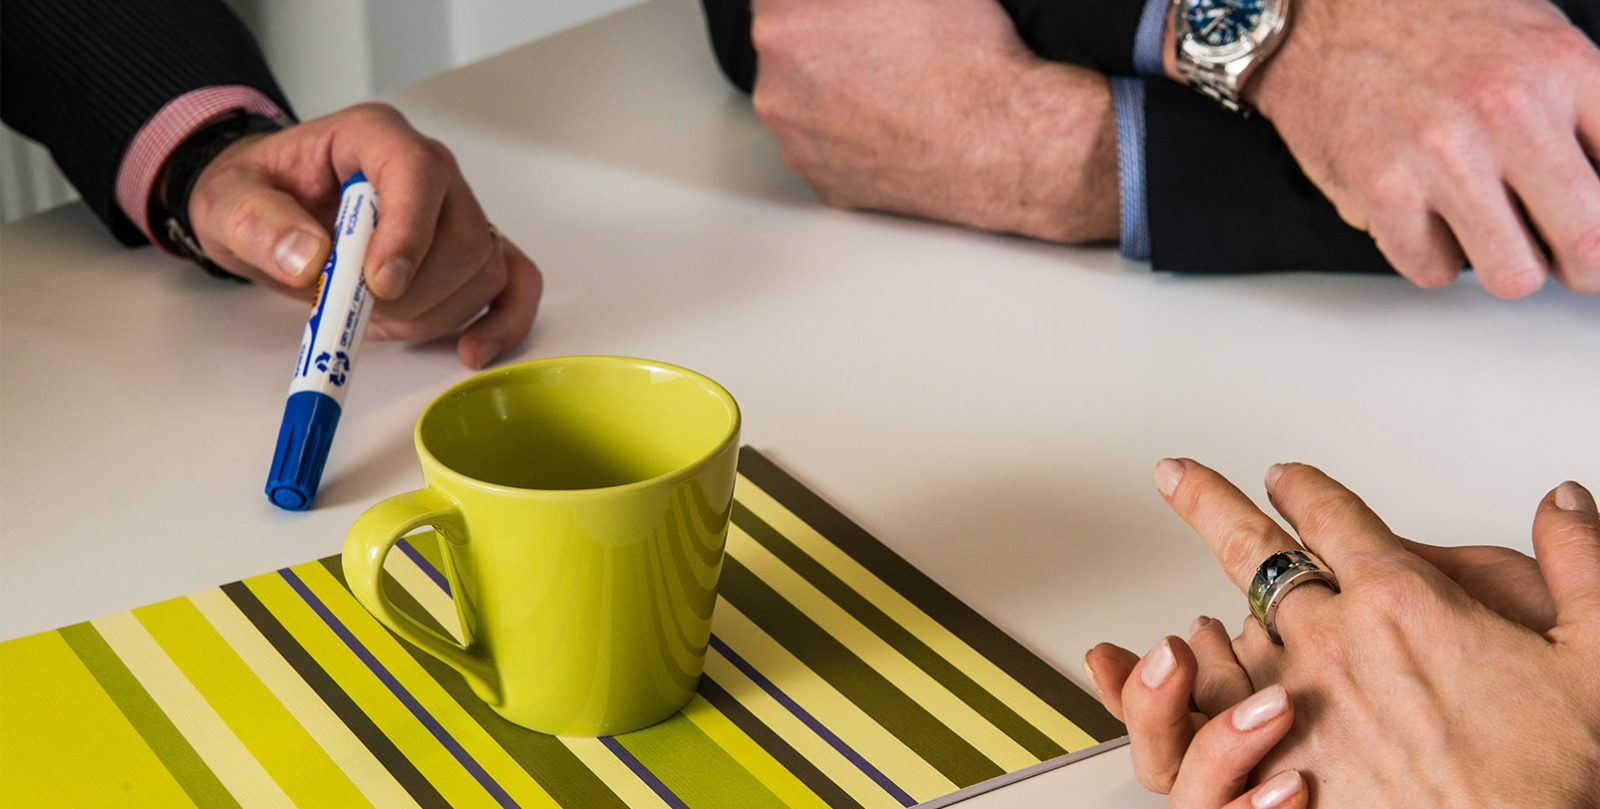 Hands on a table width a green cup